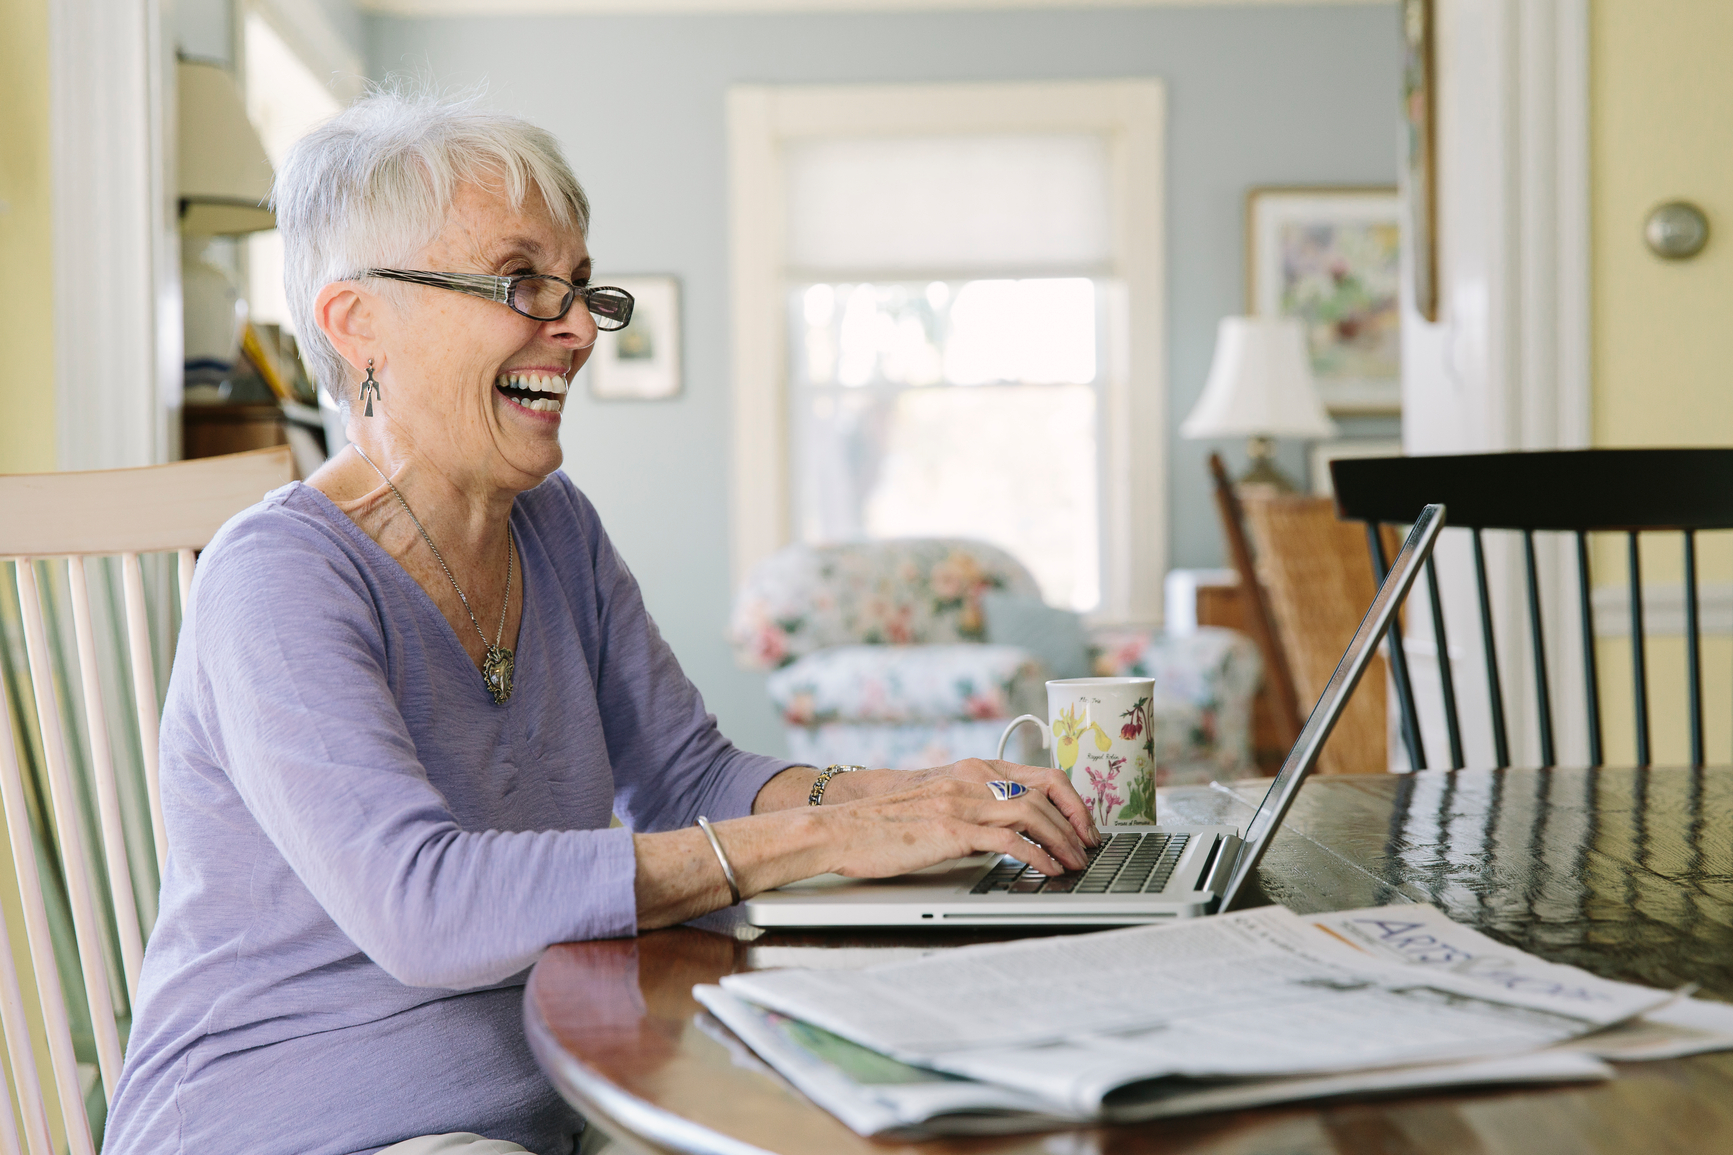 Senior woman using laptop computer